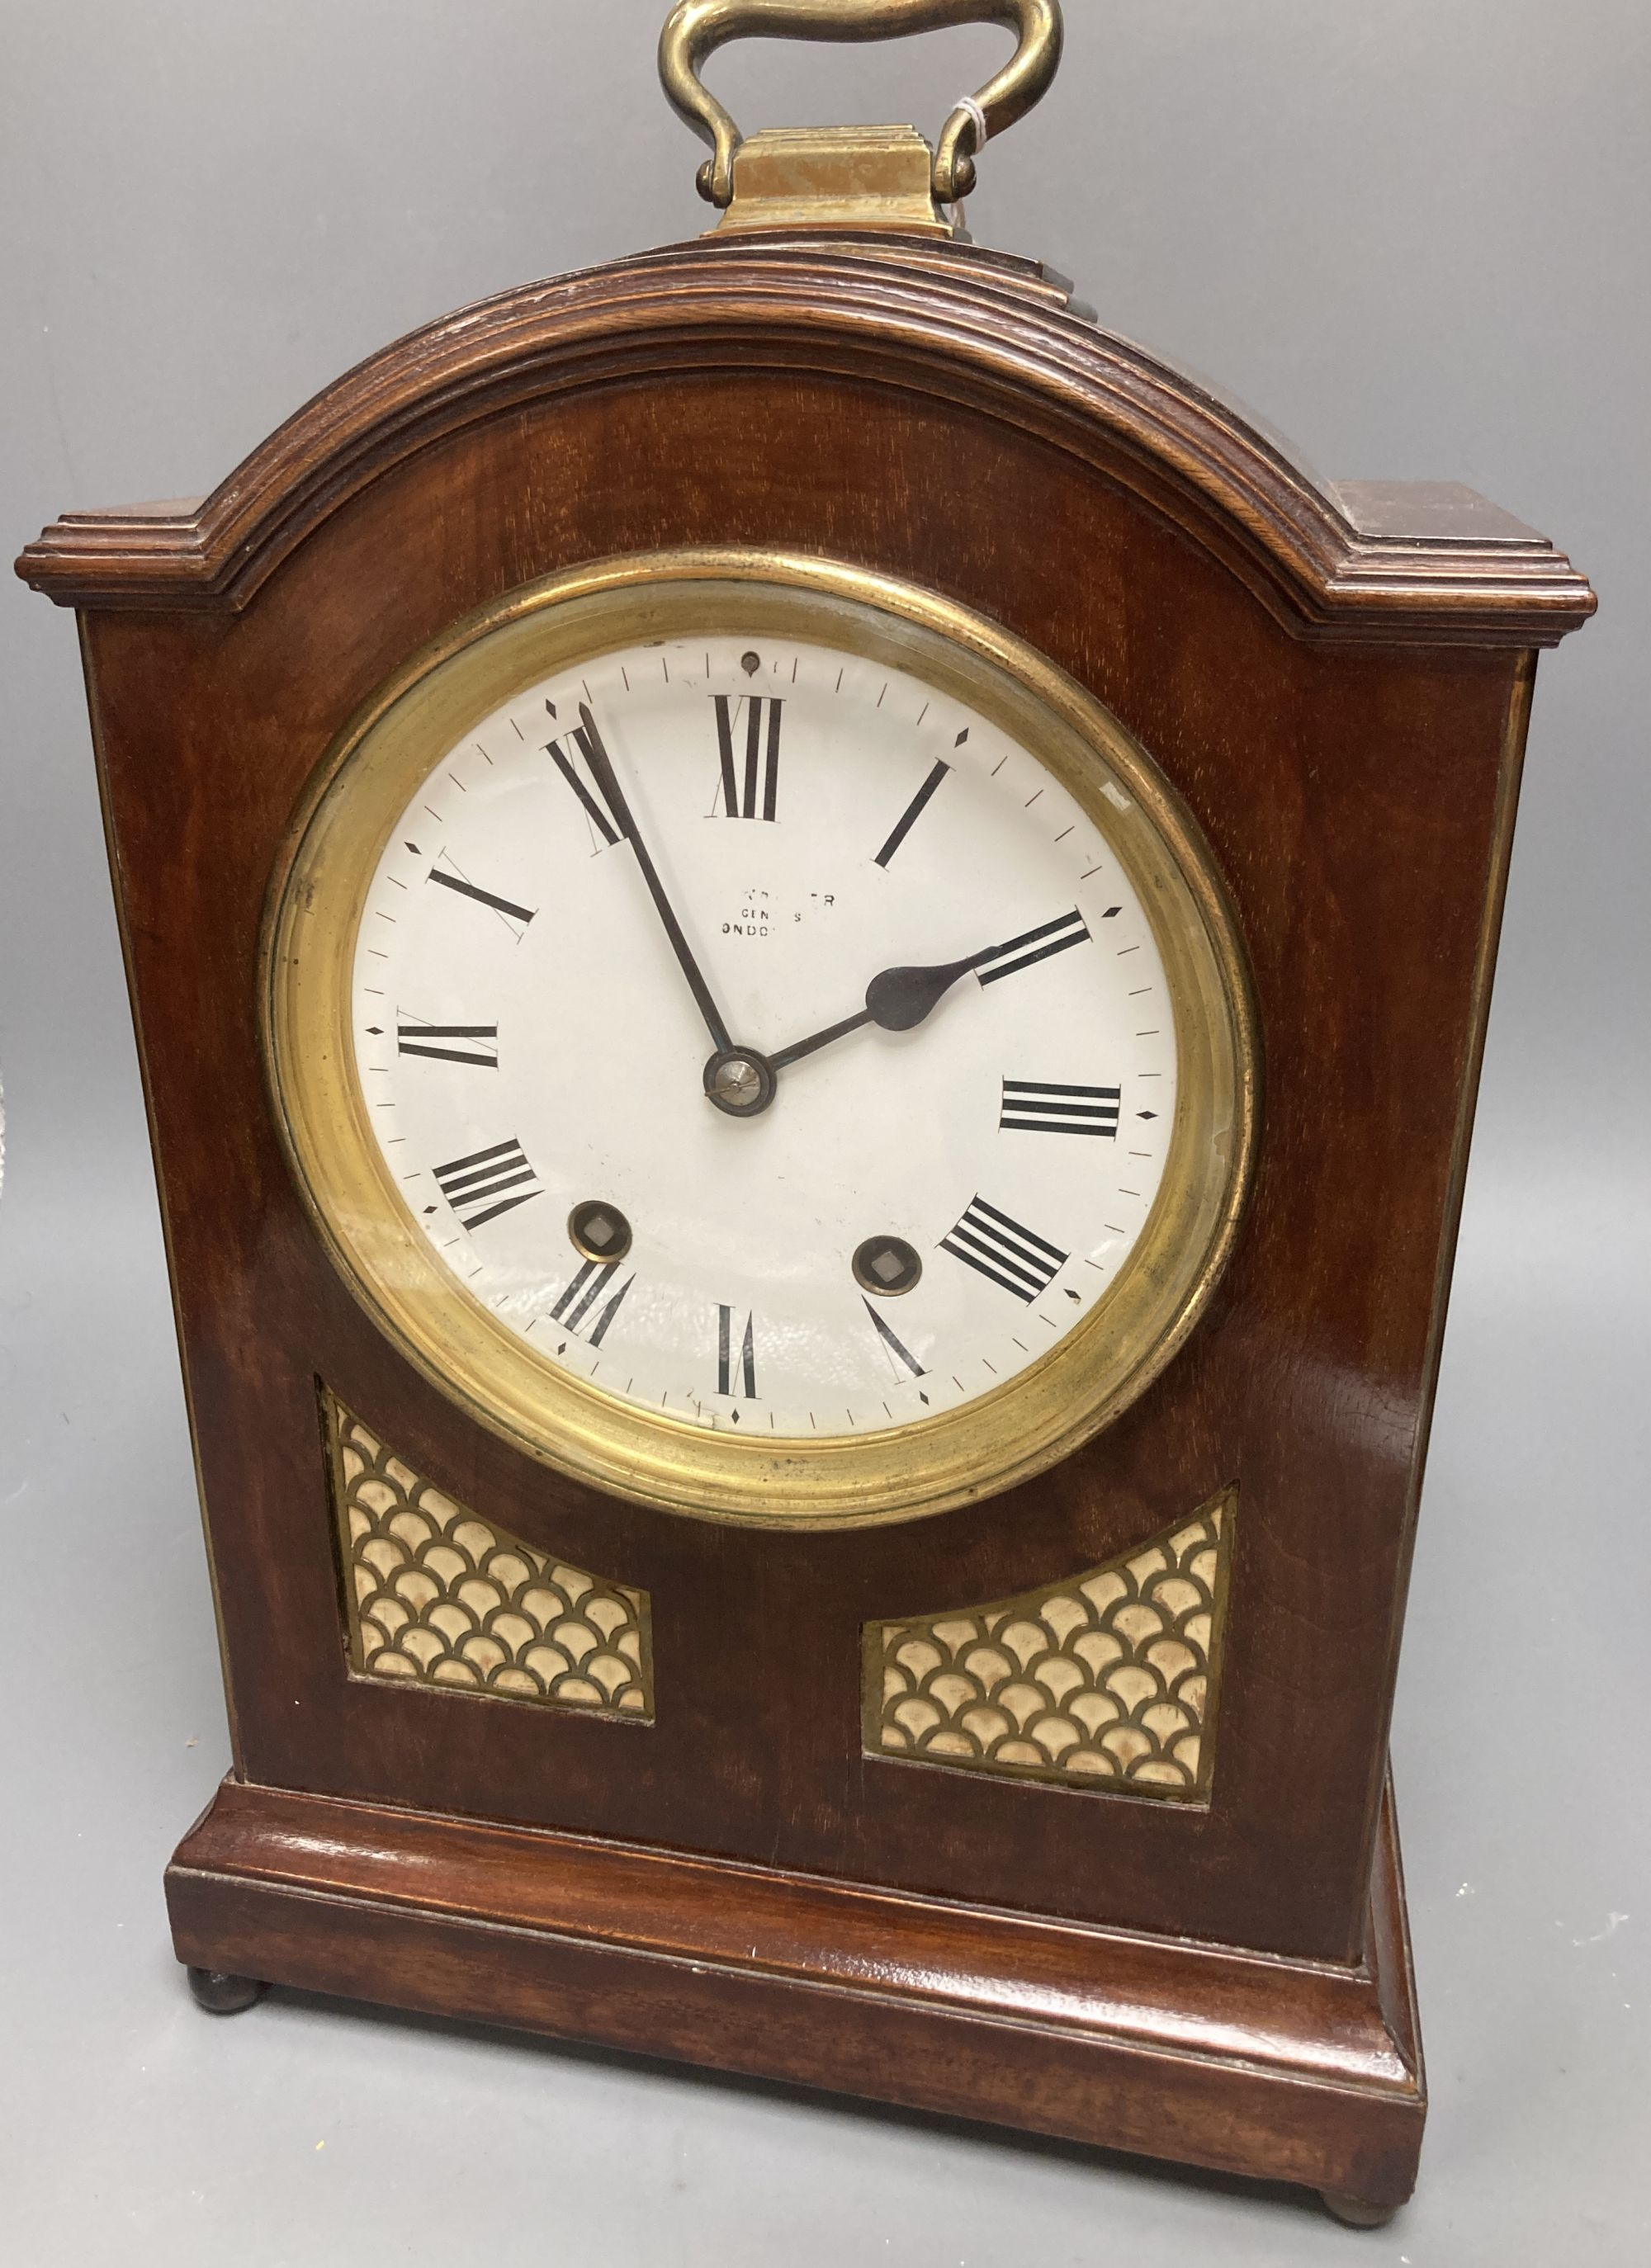 A German 19th century chiming bracket clock, in George III style, with brass grills, height 40cm